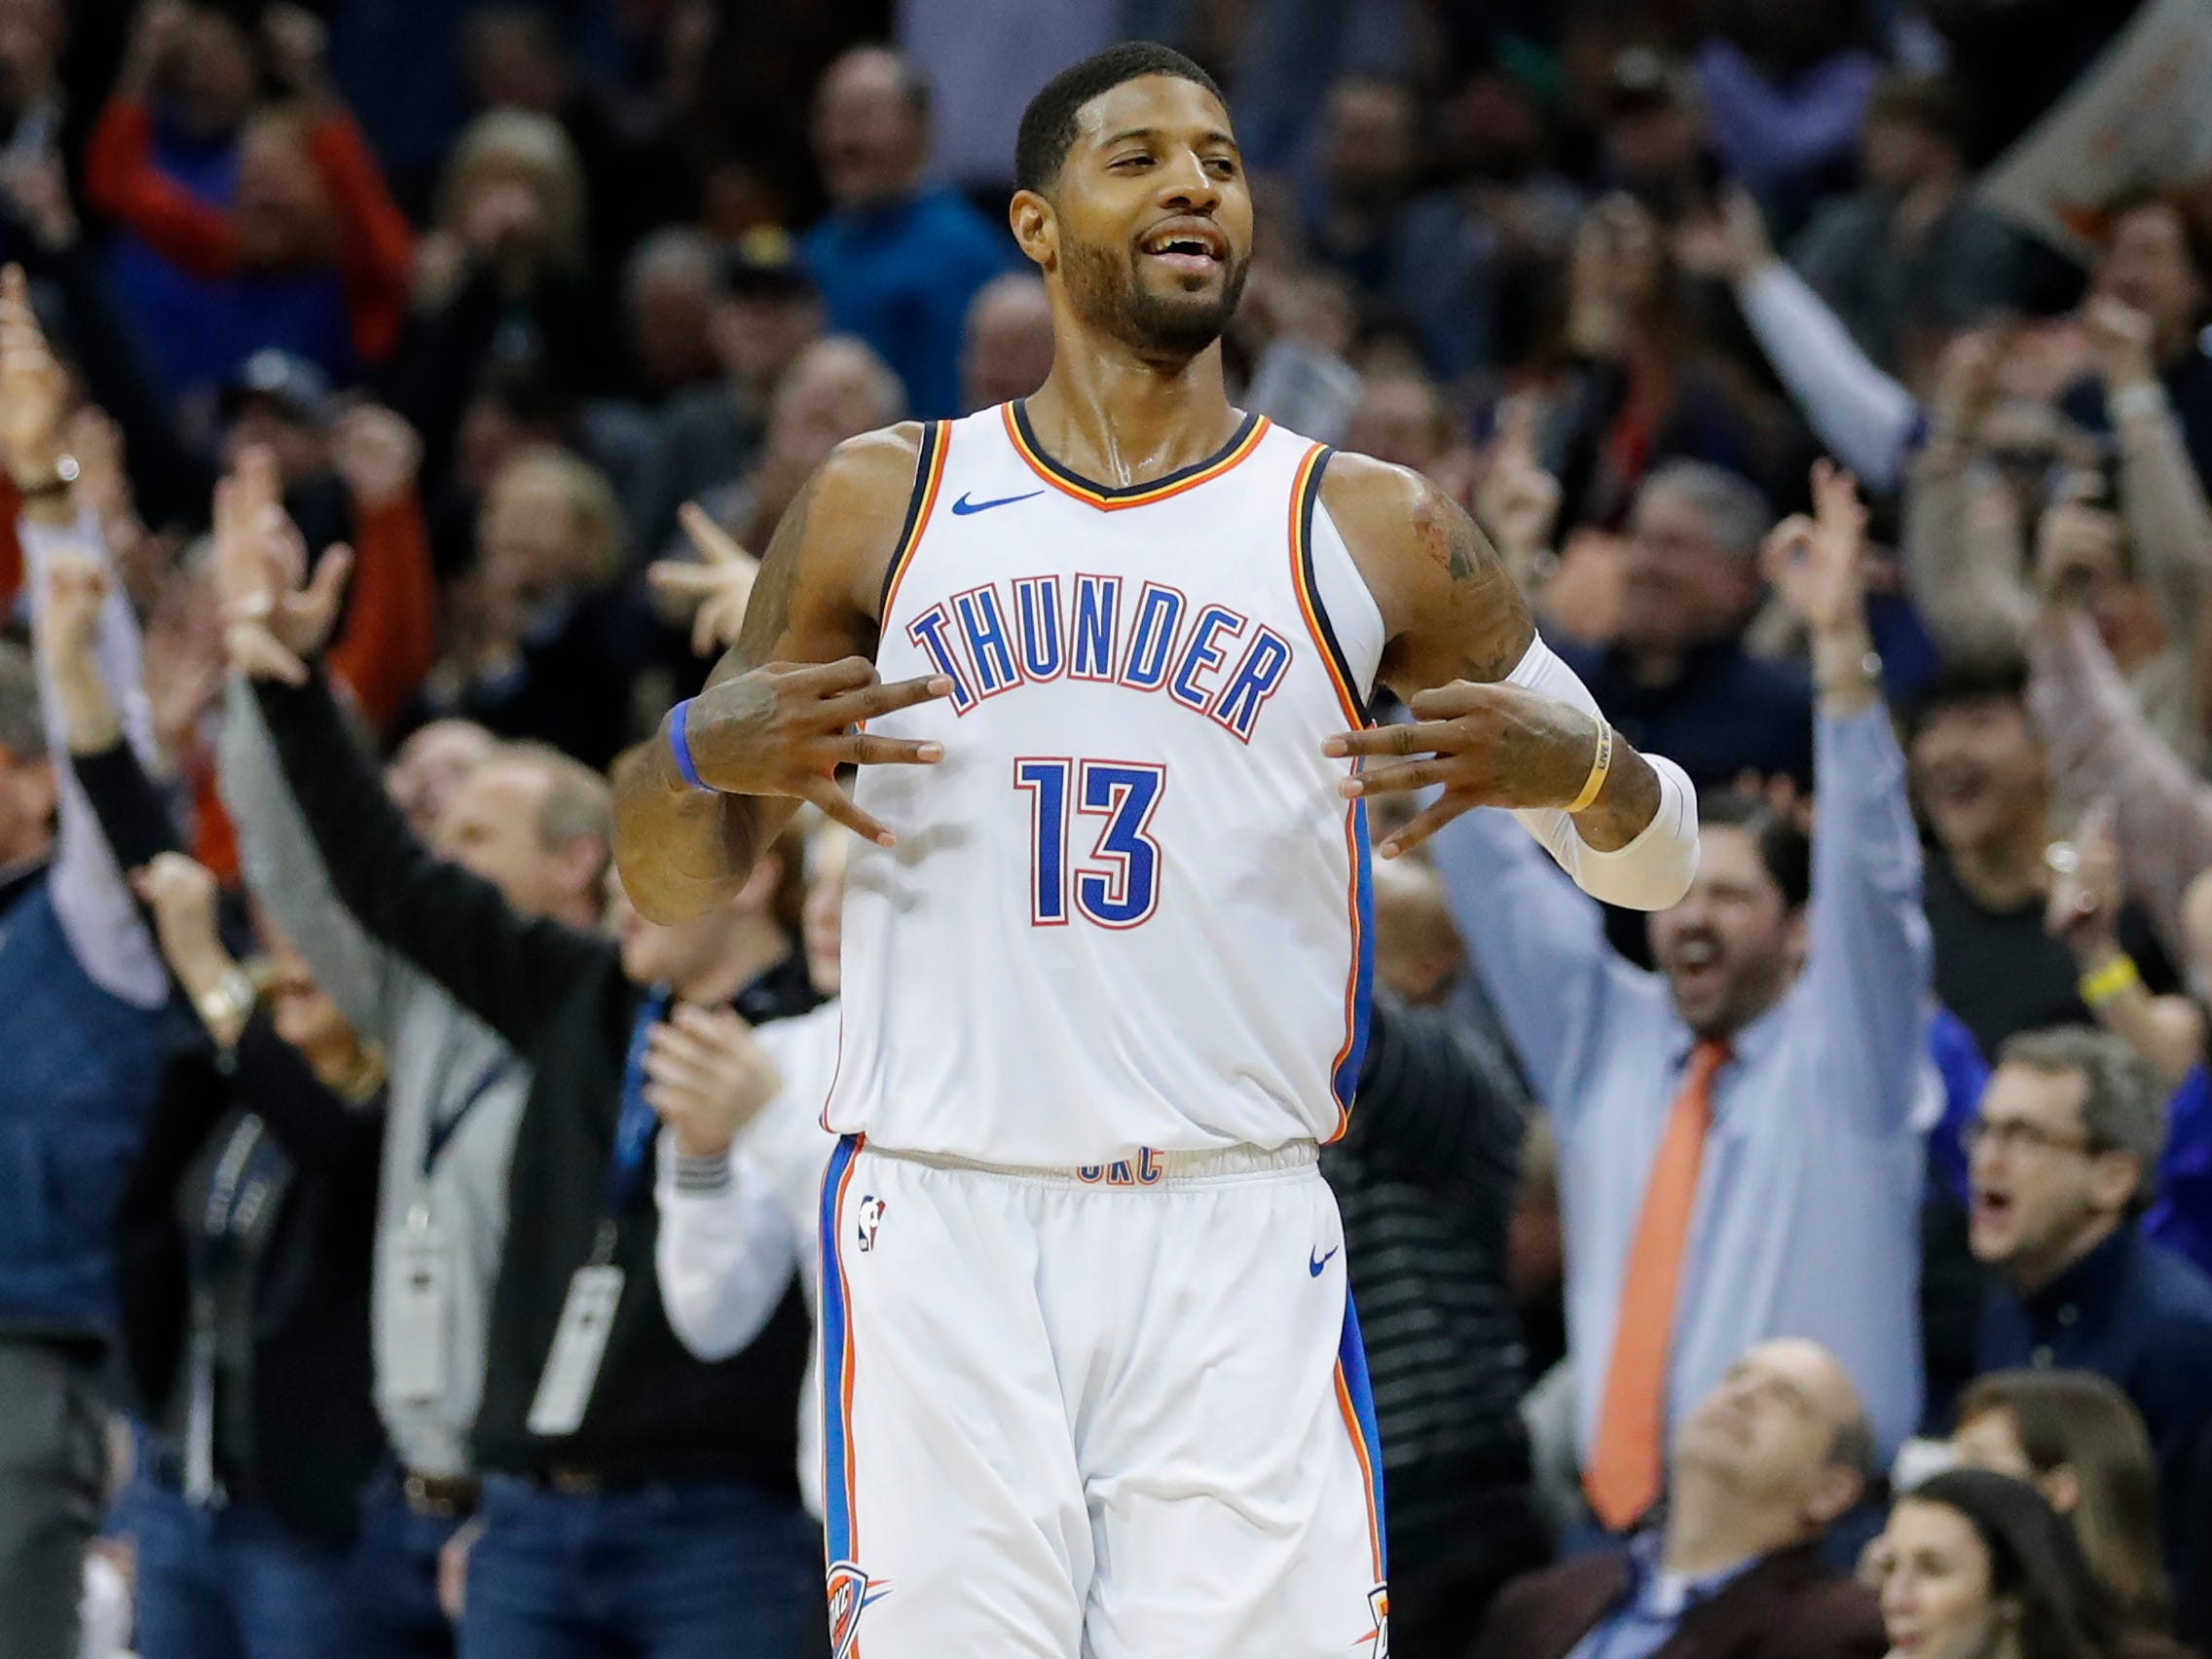 81. Paul George, Thunder (Feb. 11): 47 points, 12 rebounds, 10 assists in 120-111 win over Trail Blazers.